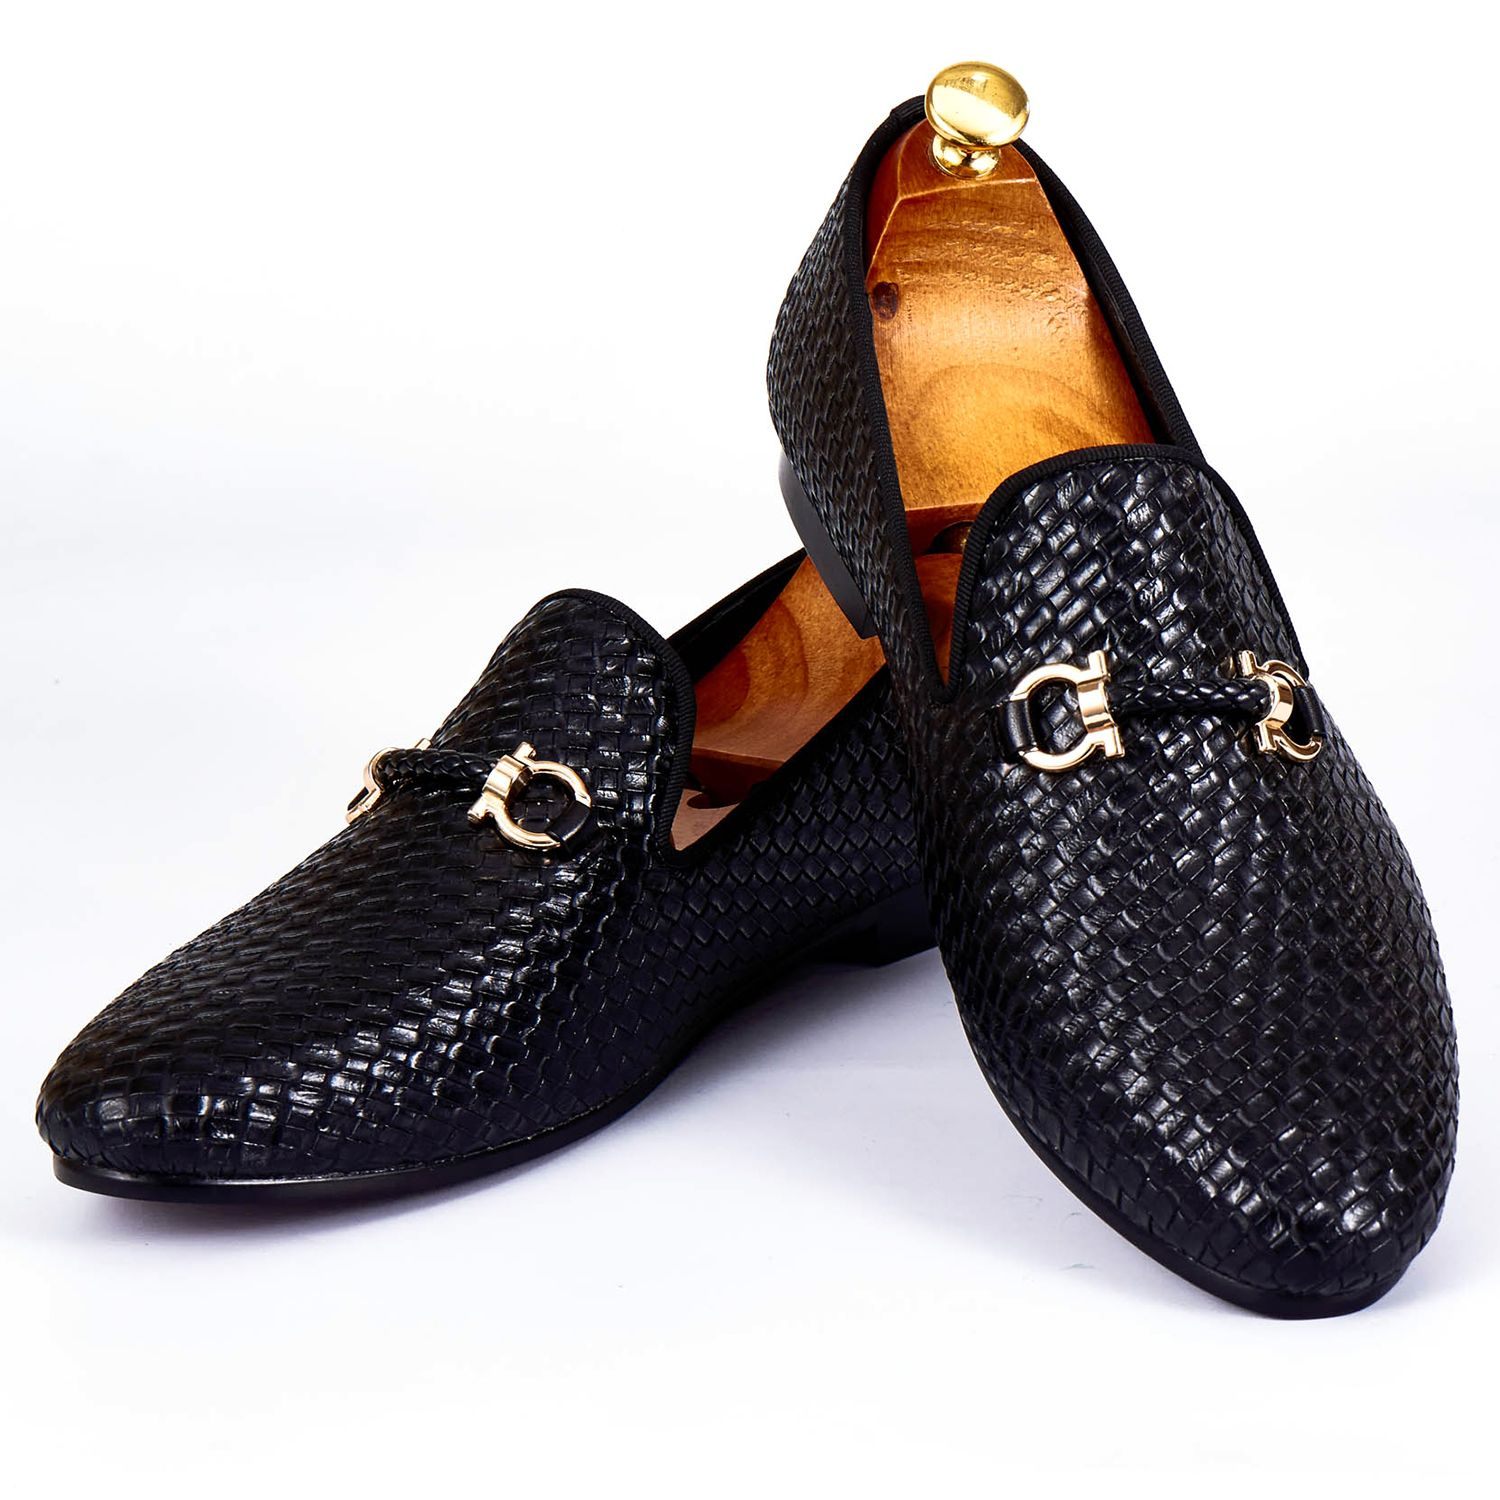 Harpelunde Men Dress Shoes Woven Leather Black Wedding Shoes Buckle Strap Flats Size 7-14